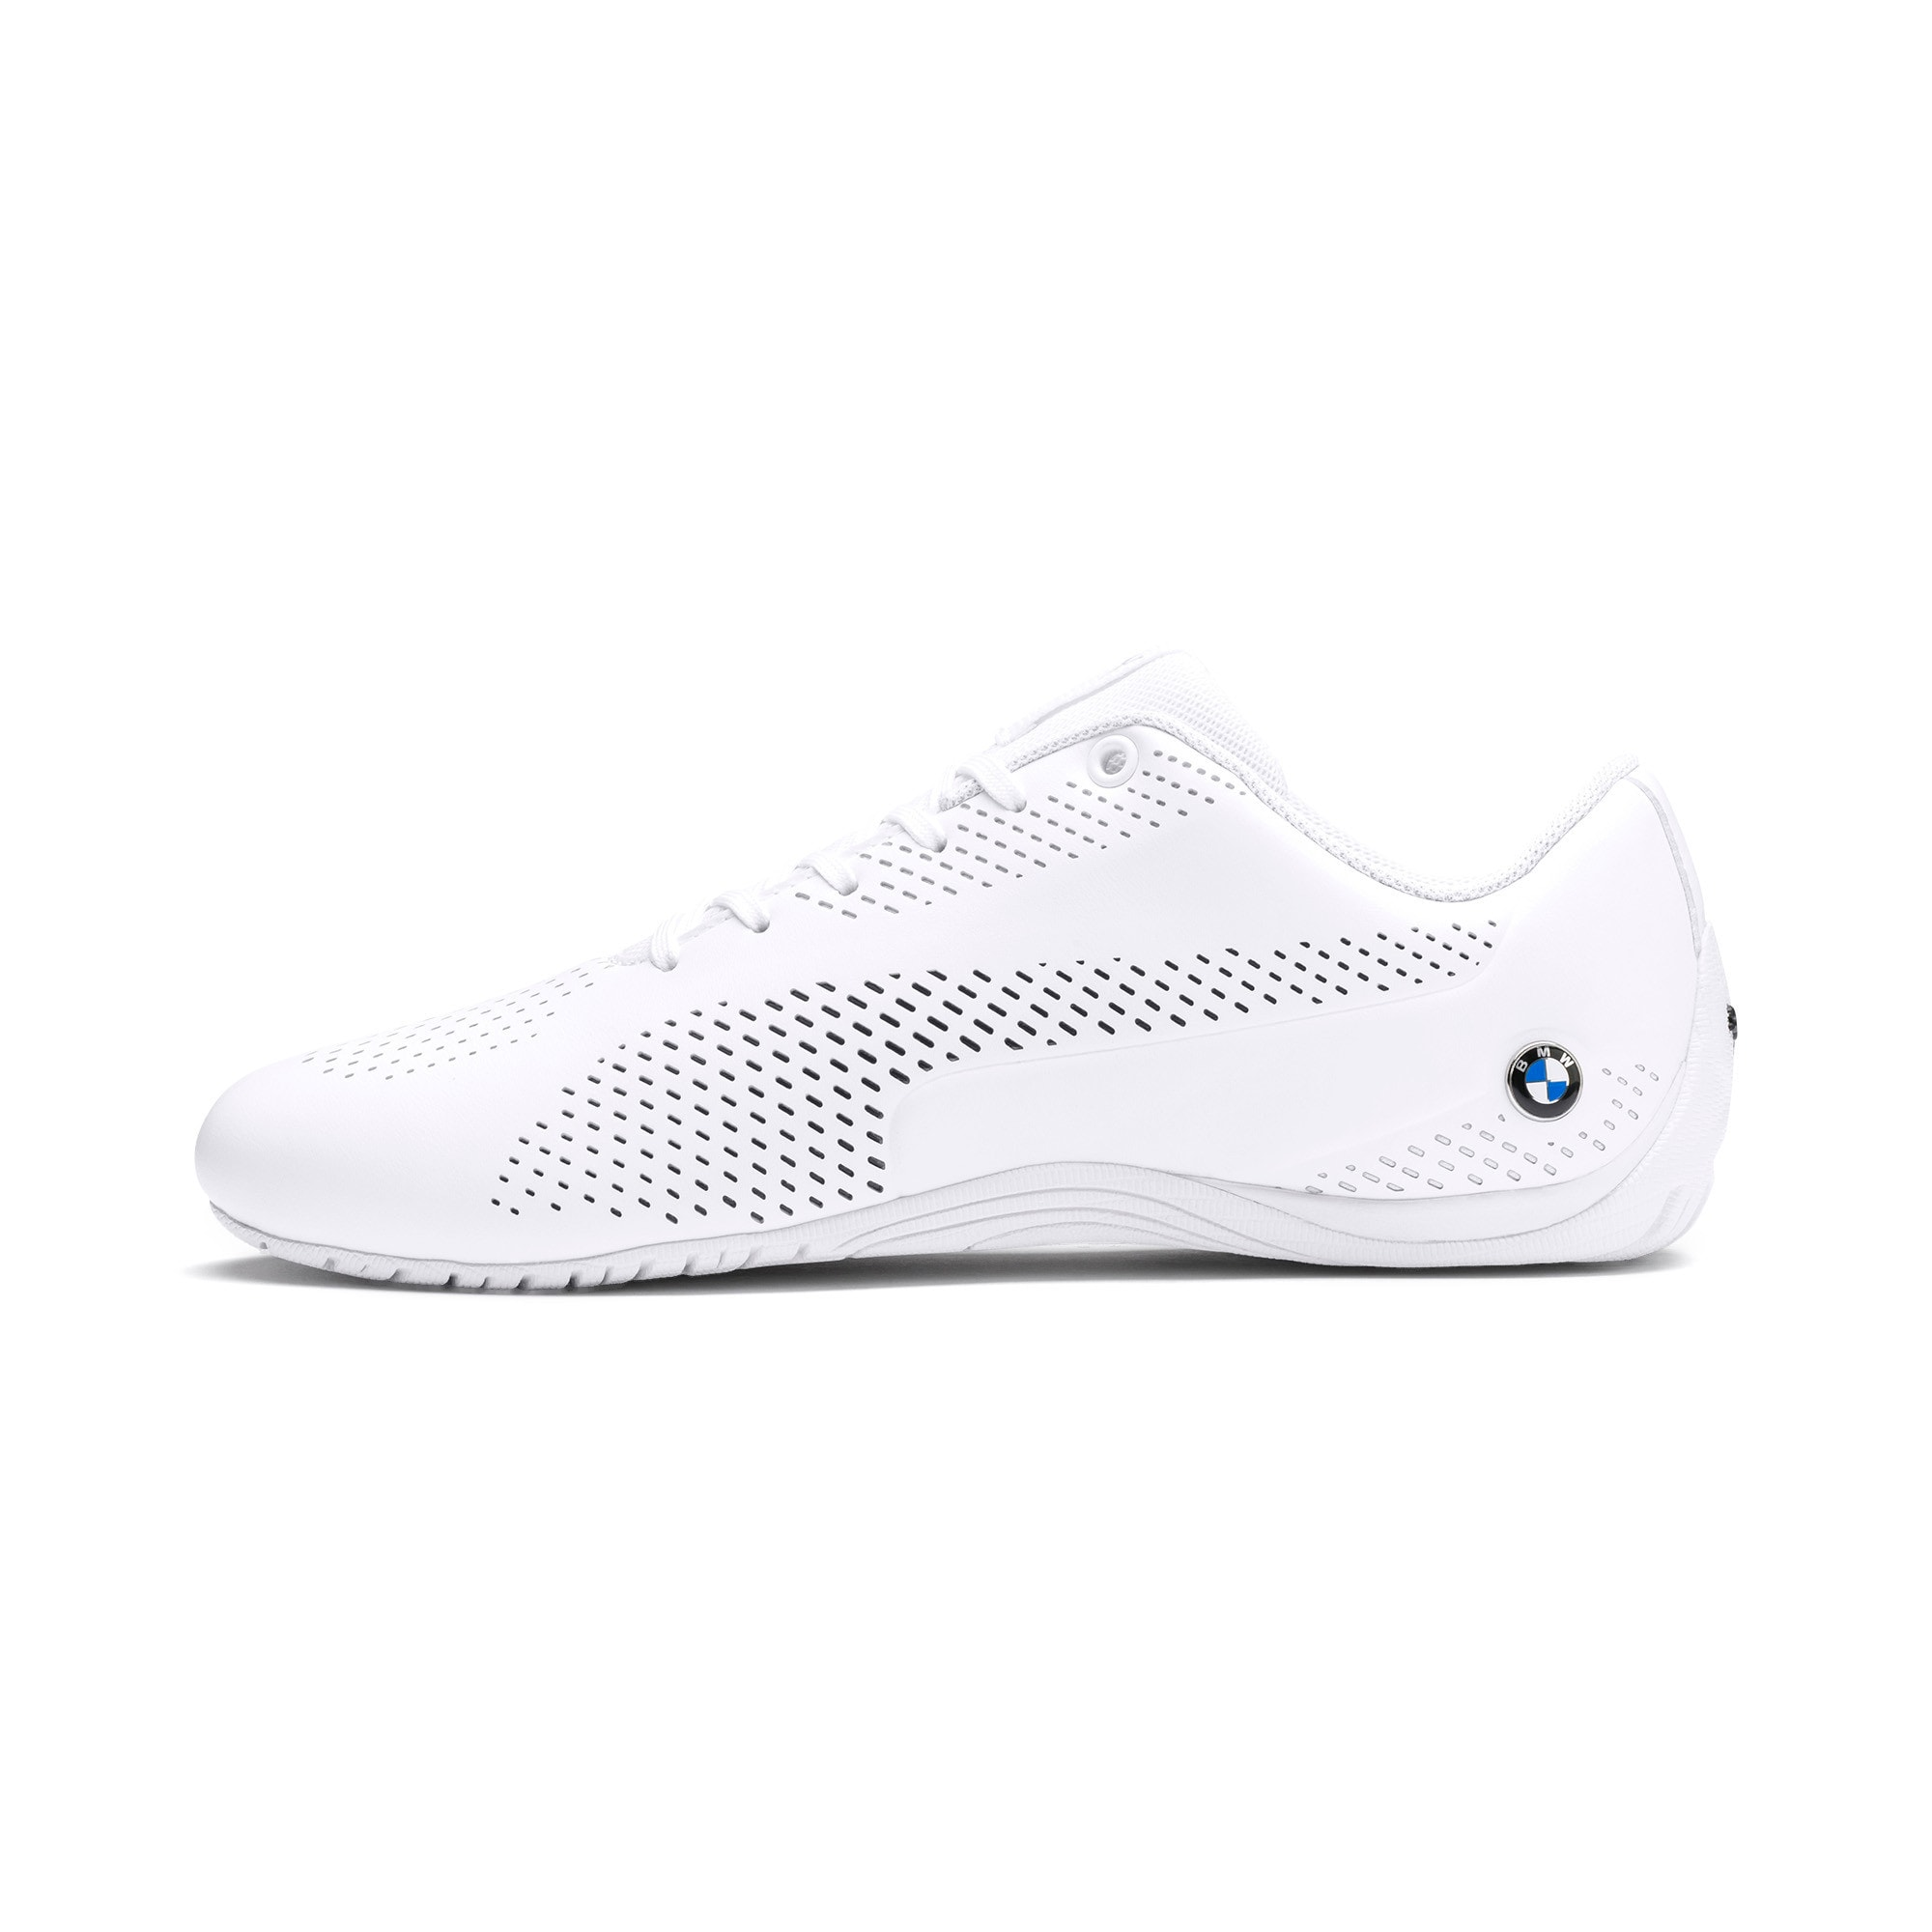 Thumbnail 1 of BMW M Motorsport Drift Cat 5 Ultra II Shoes, Puma White-Puma Black, medium